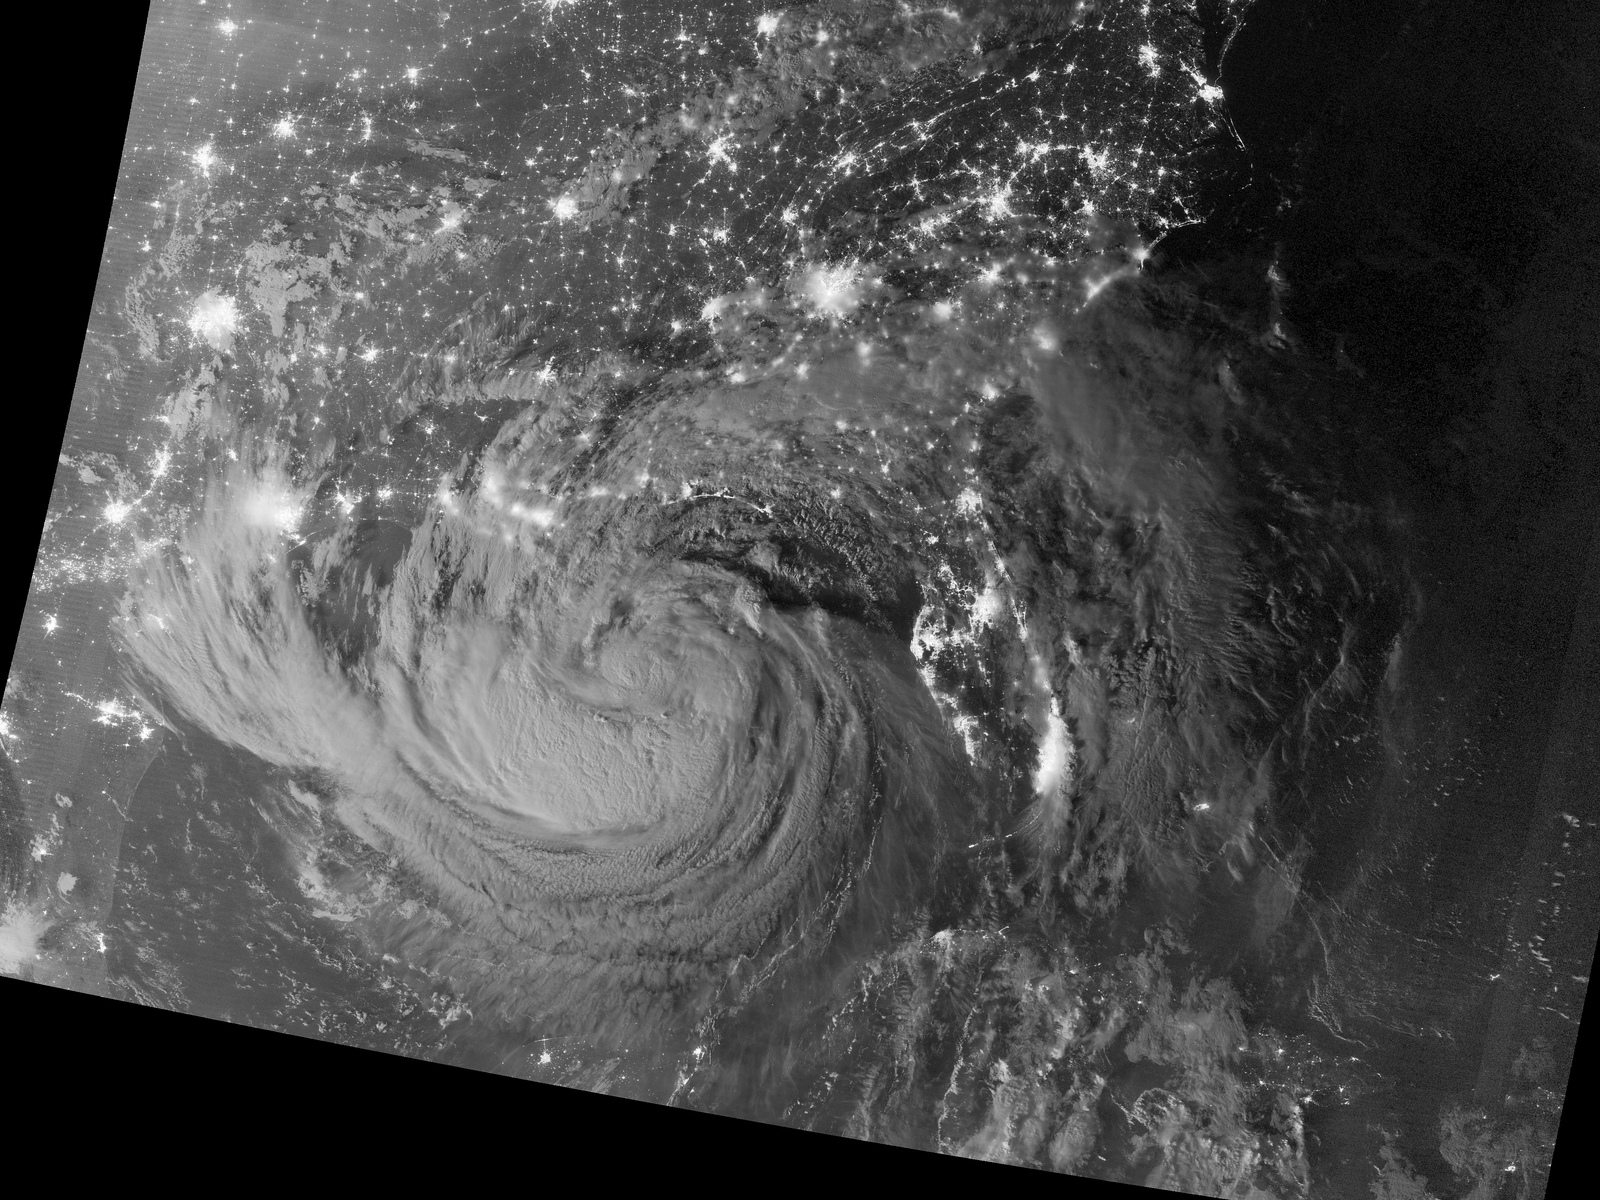 NASA Captures Amazing View of Tropical Storm Isaac at Night